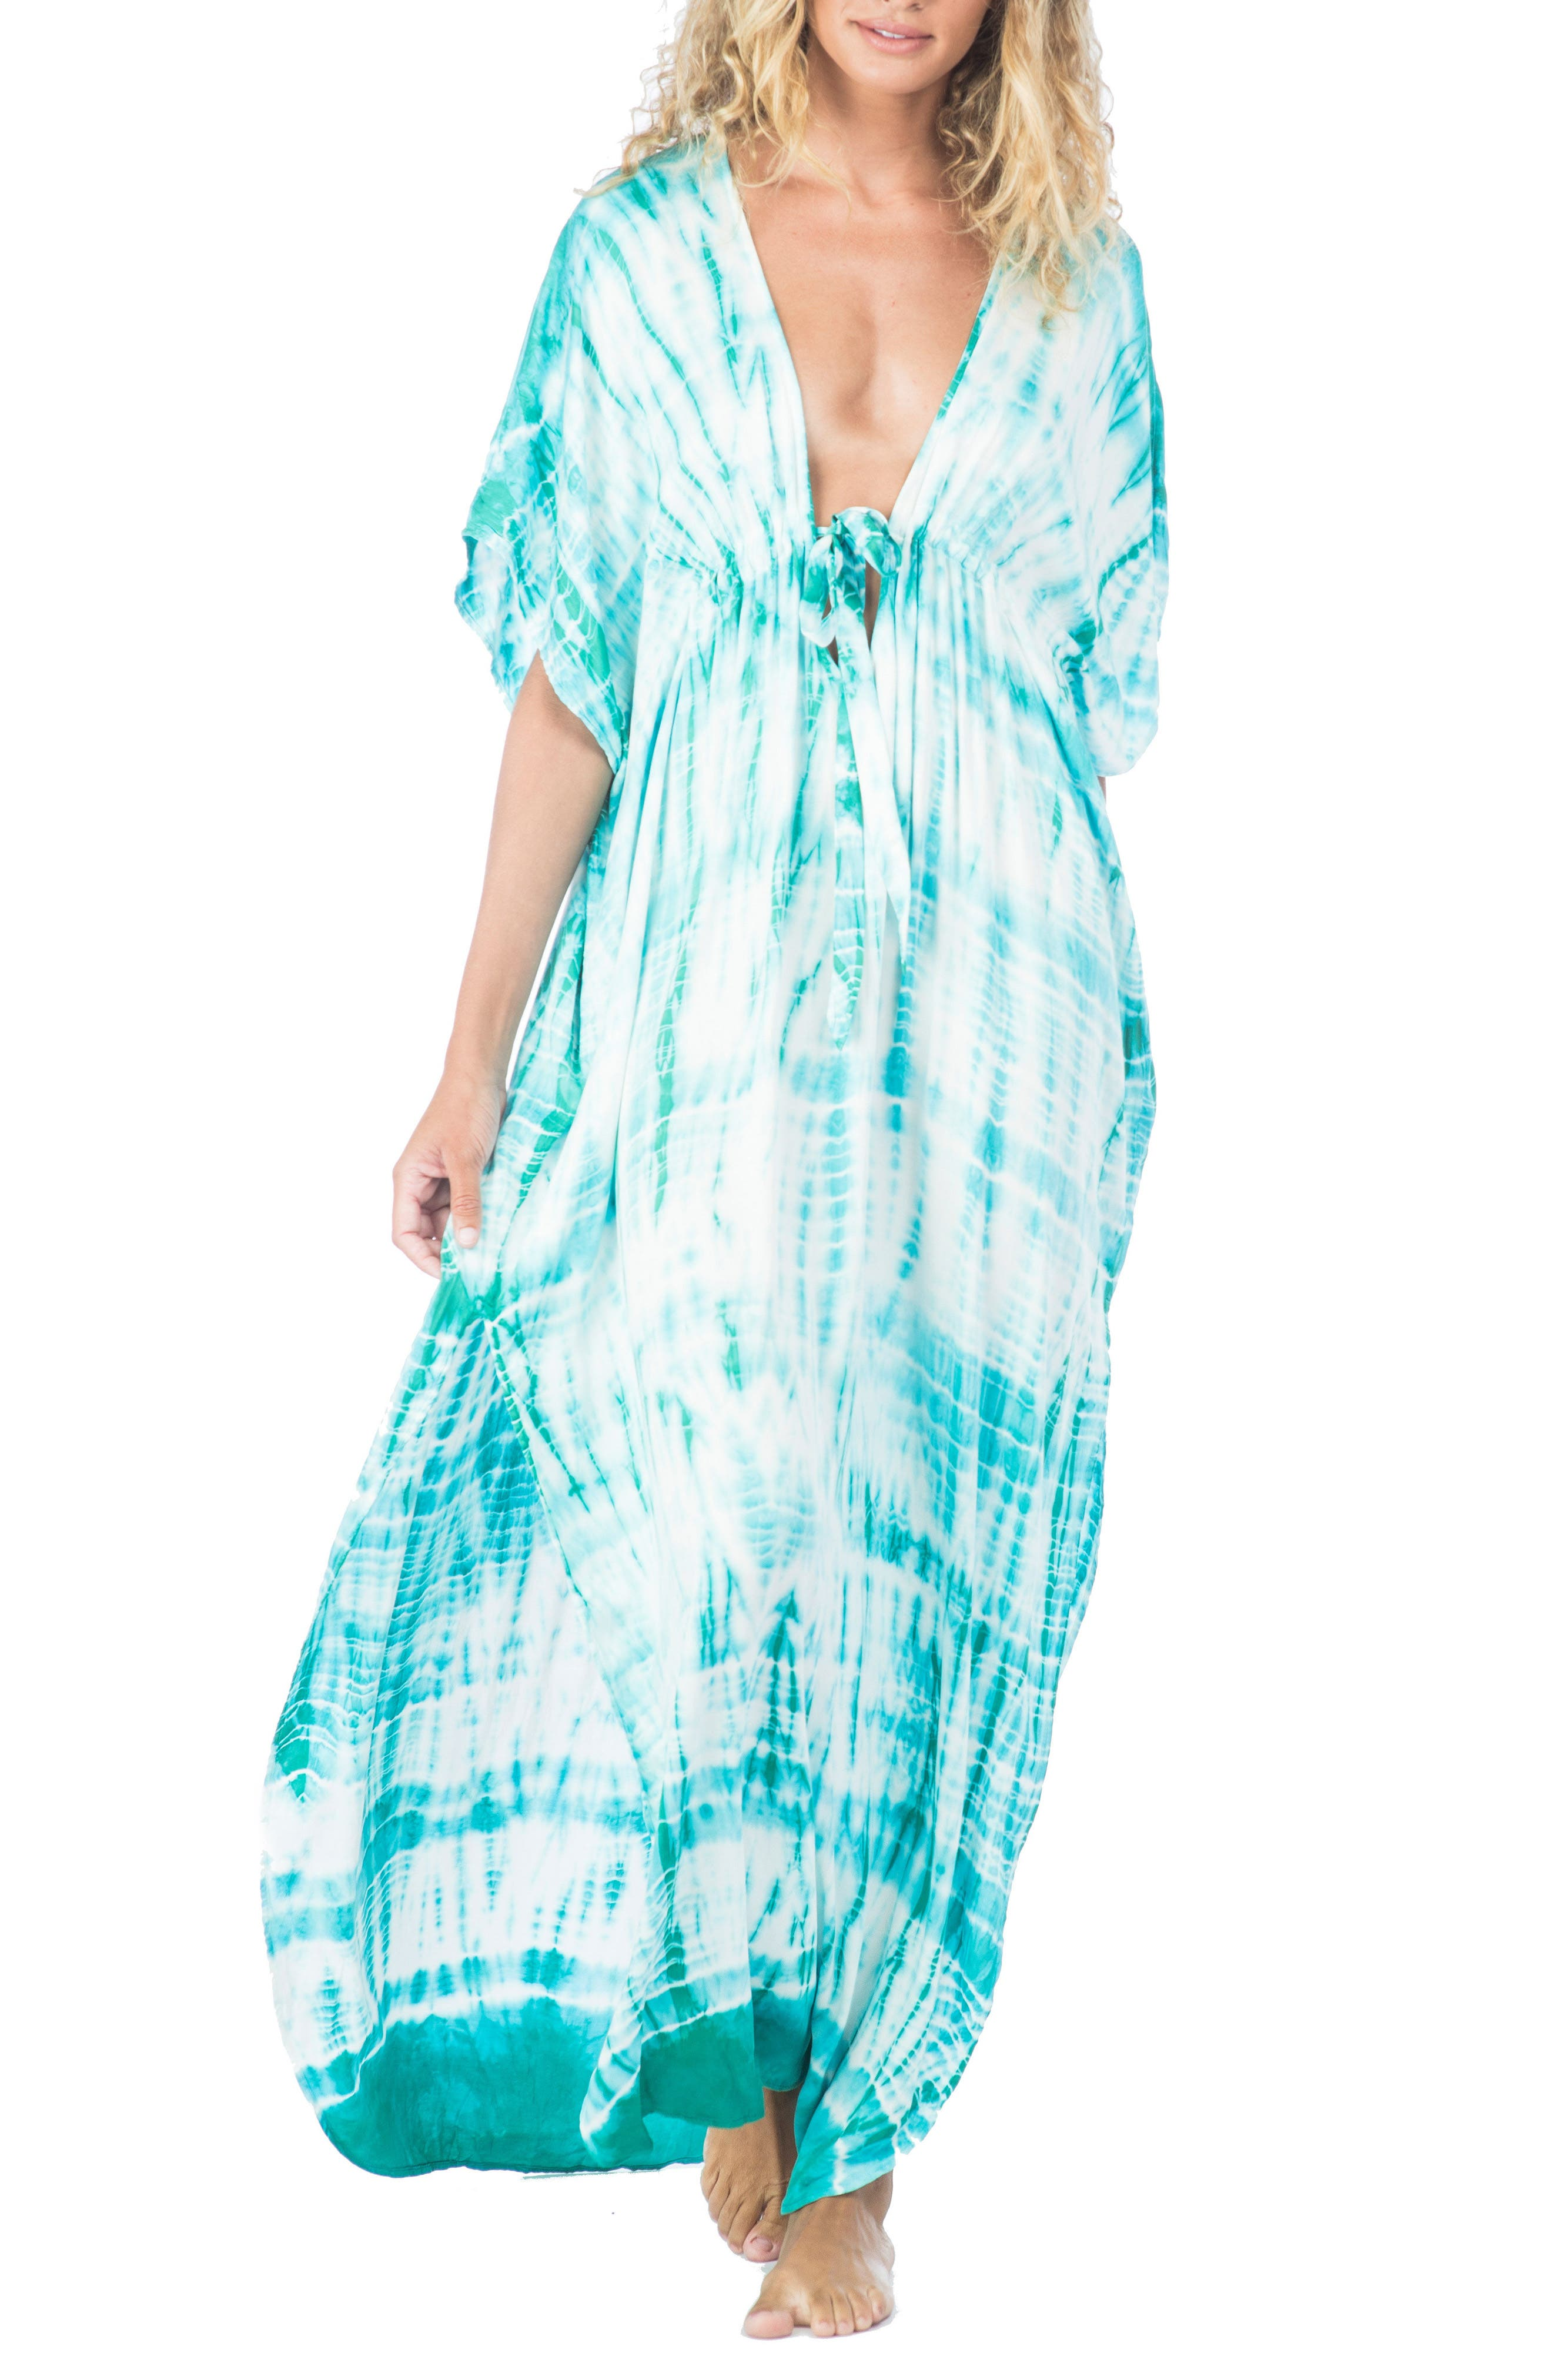 South Beach Tie Dye Ashley Cover-Up Dress,                         Main,                         color,